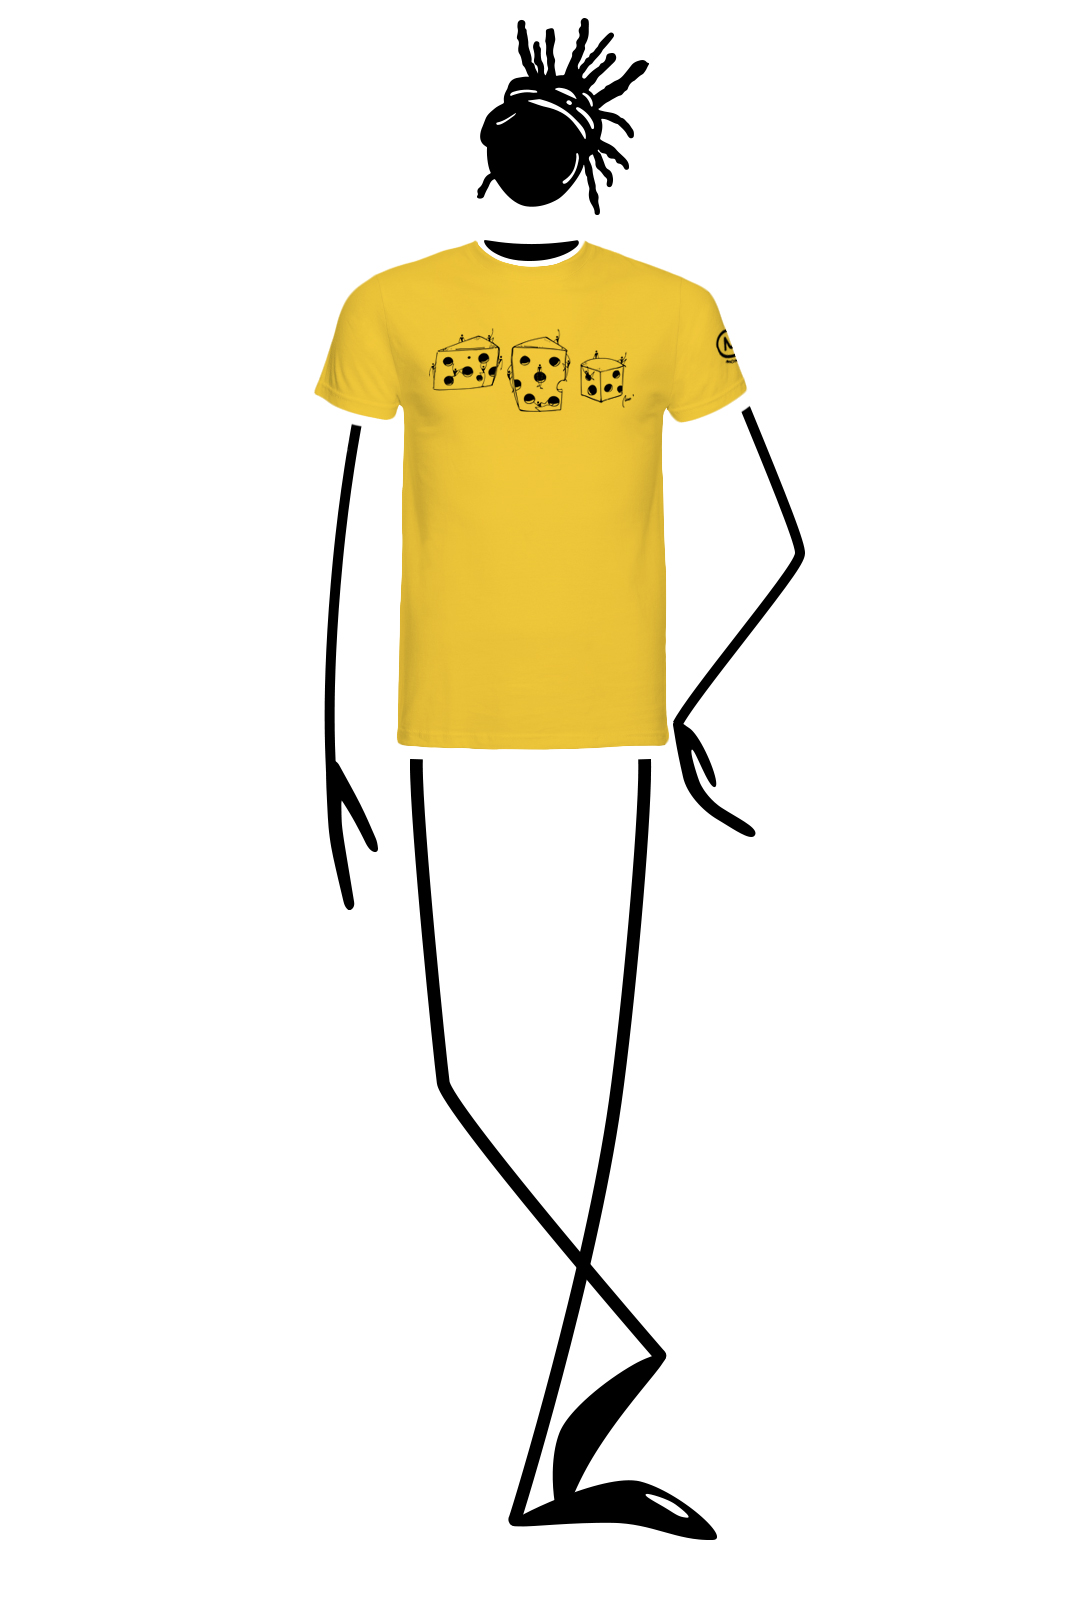 t-shirt homme jaune HASH Monvic fromage